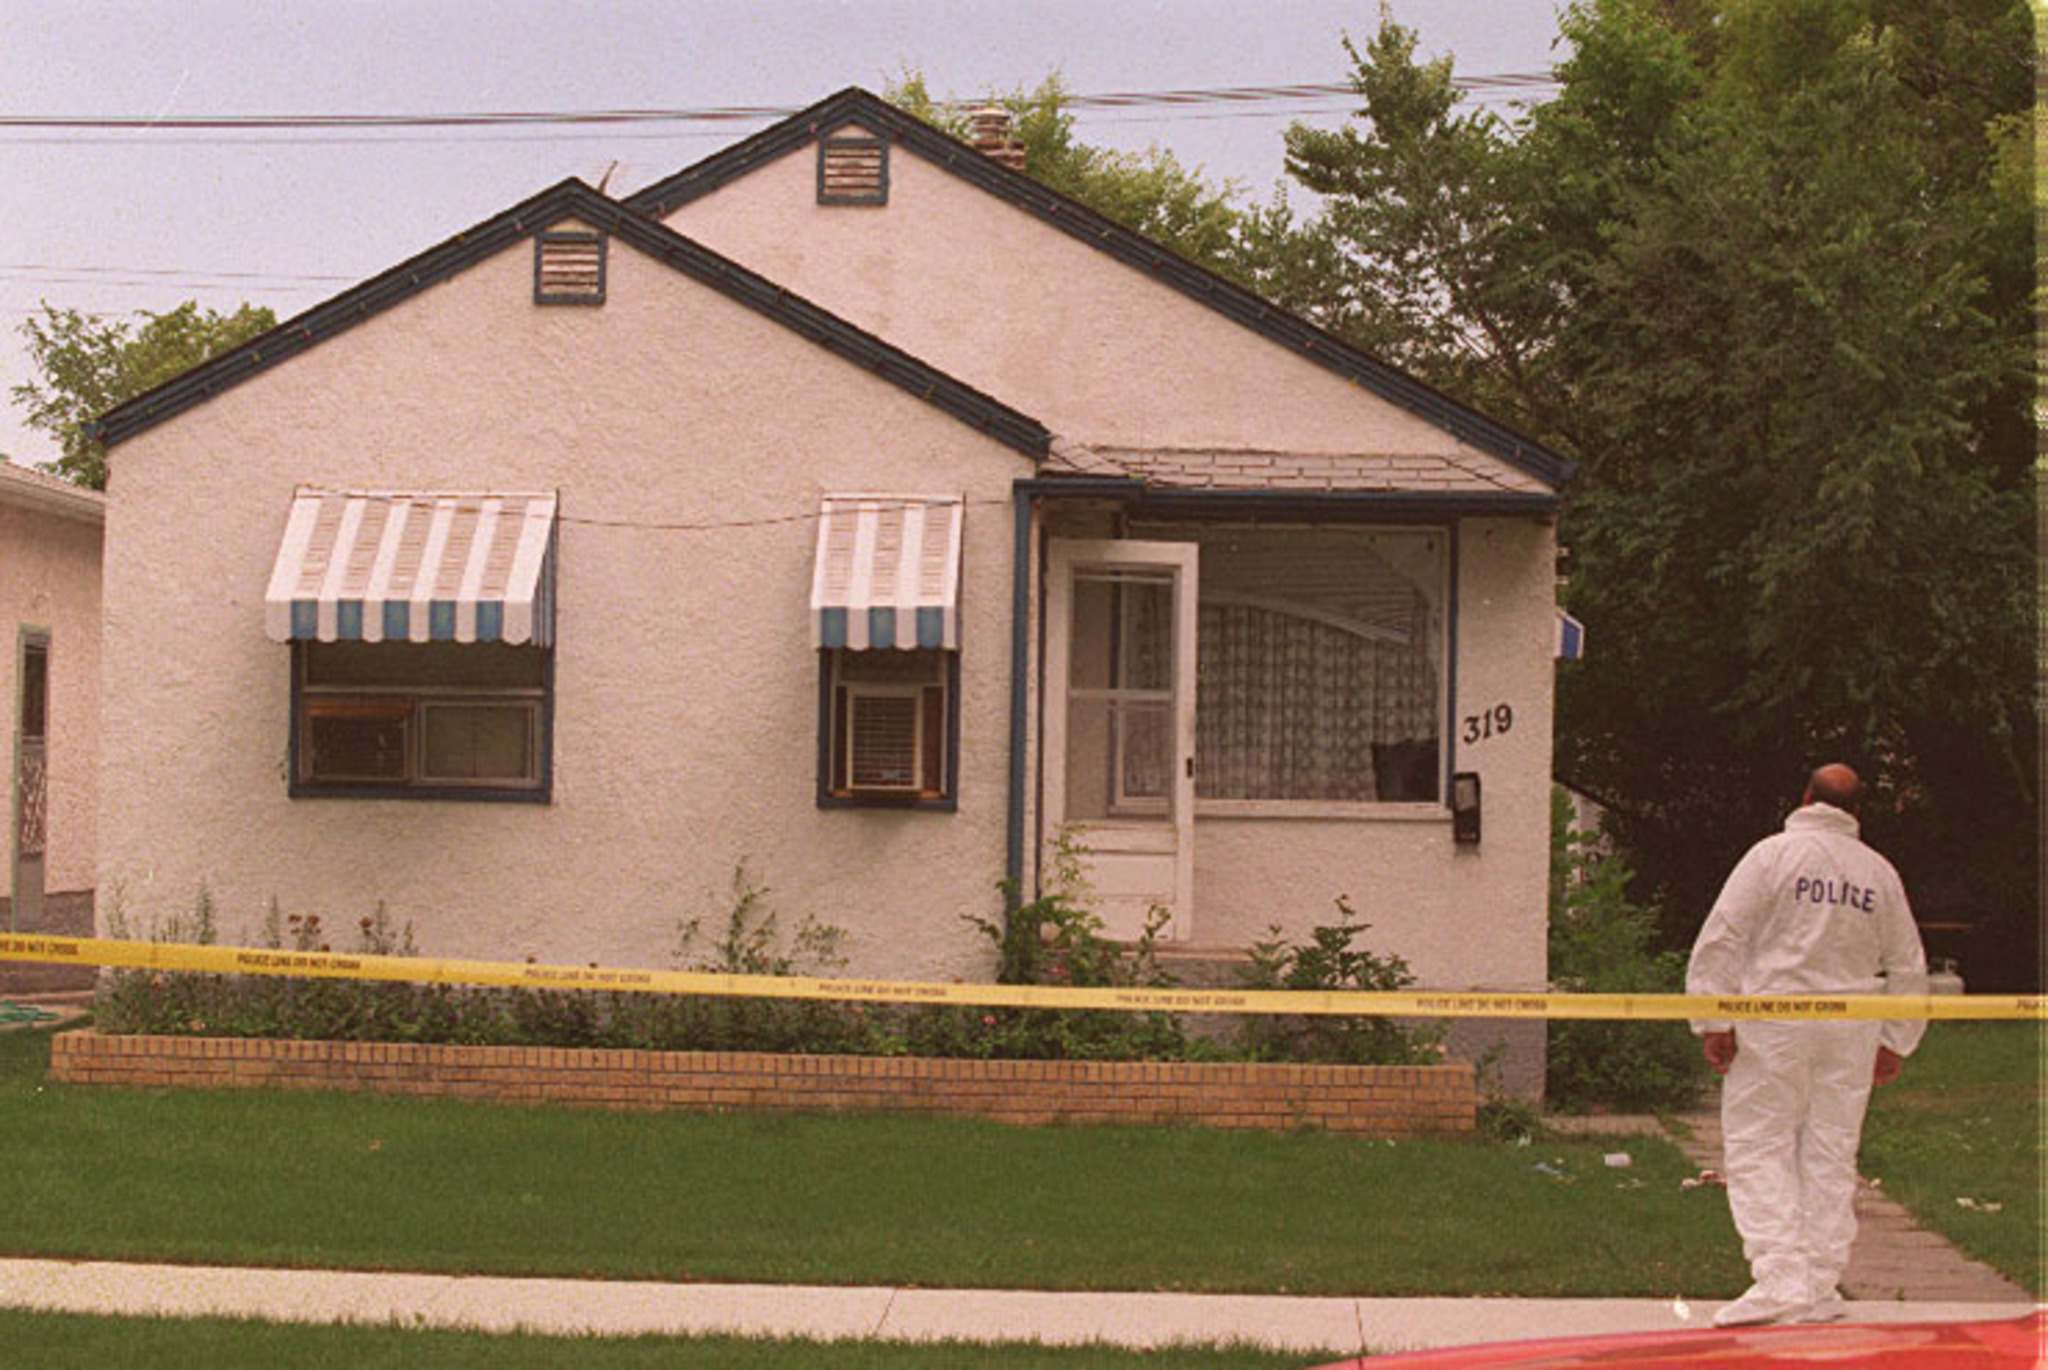 Police investigate the slayings of Russell Krowetz, Stefan Zurstegge and James Gross at 319 Semple Ave. in 1996. (Winnipeg Free Press files)</p>